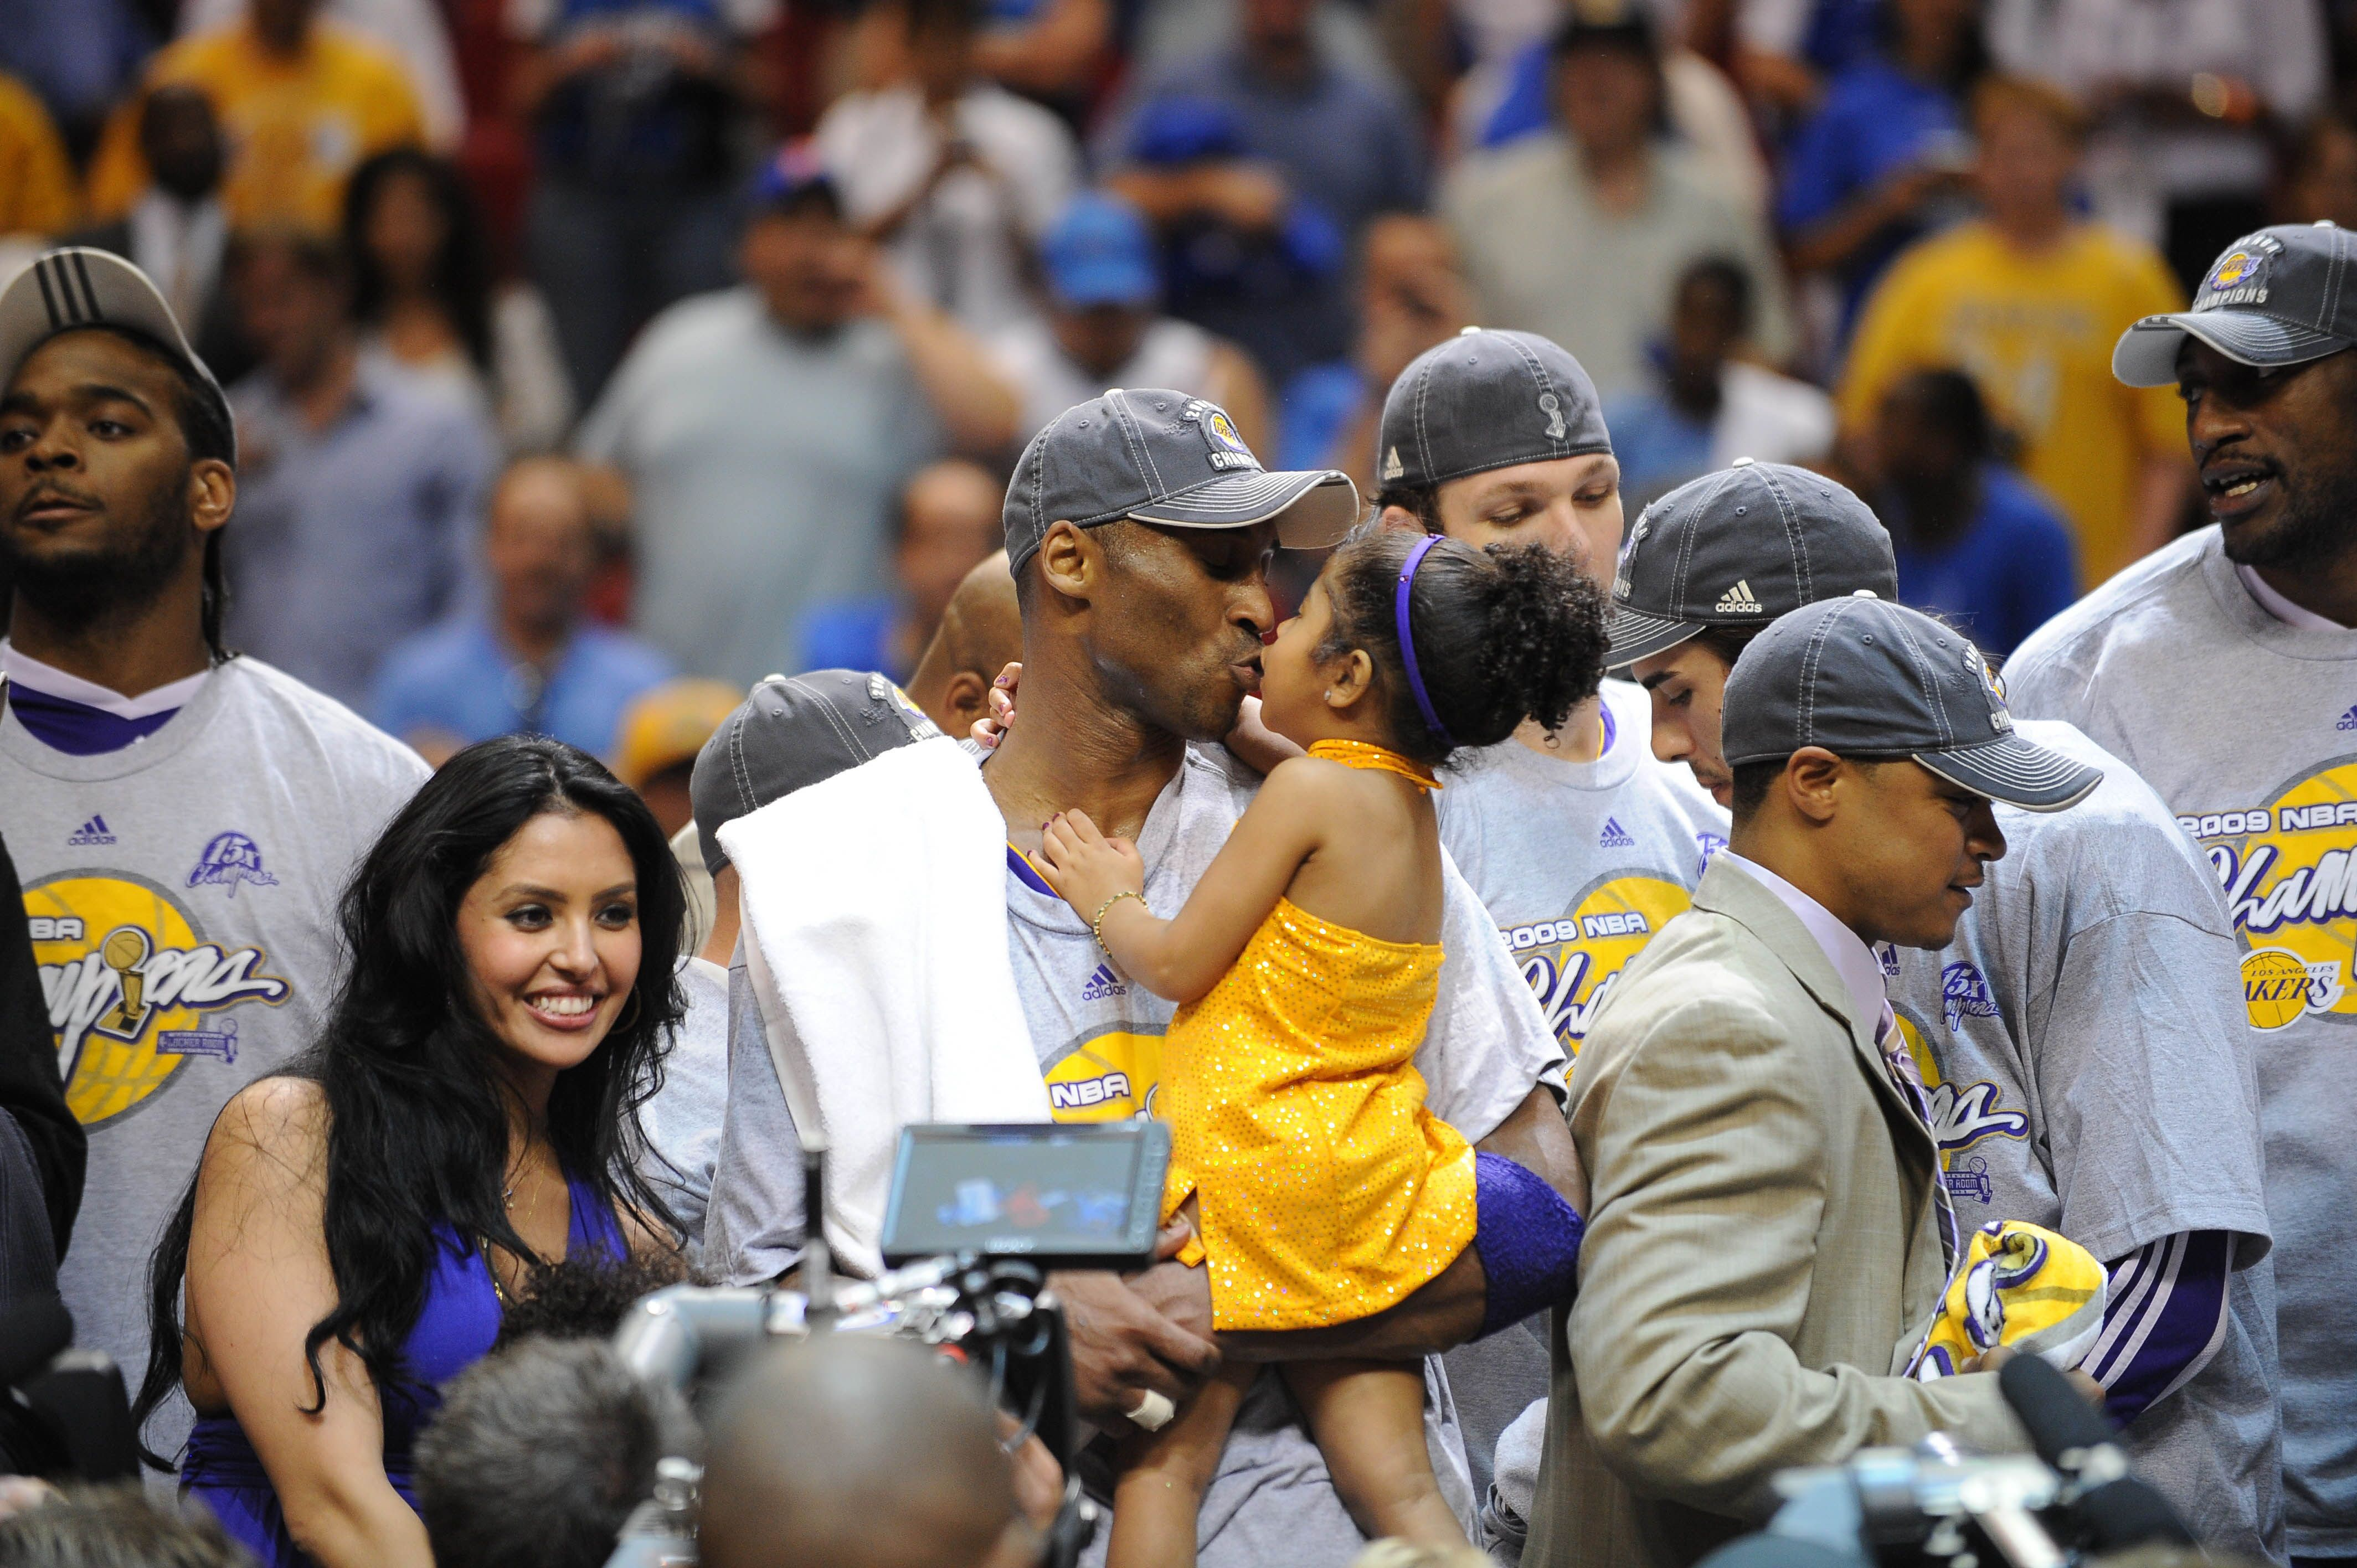 Kobe and his daughter at a basketball game